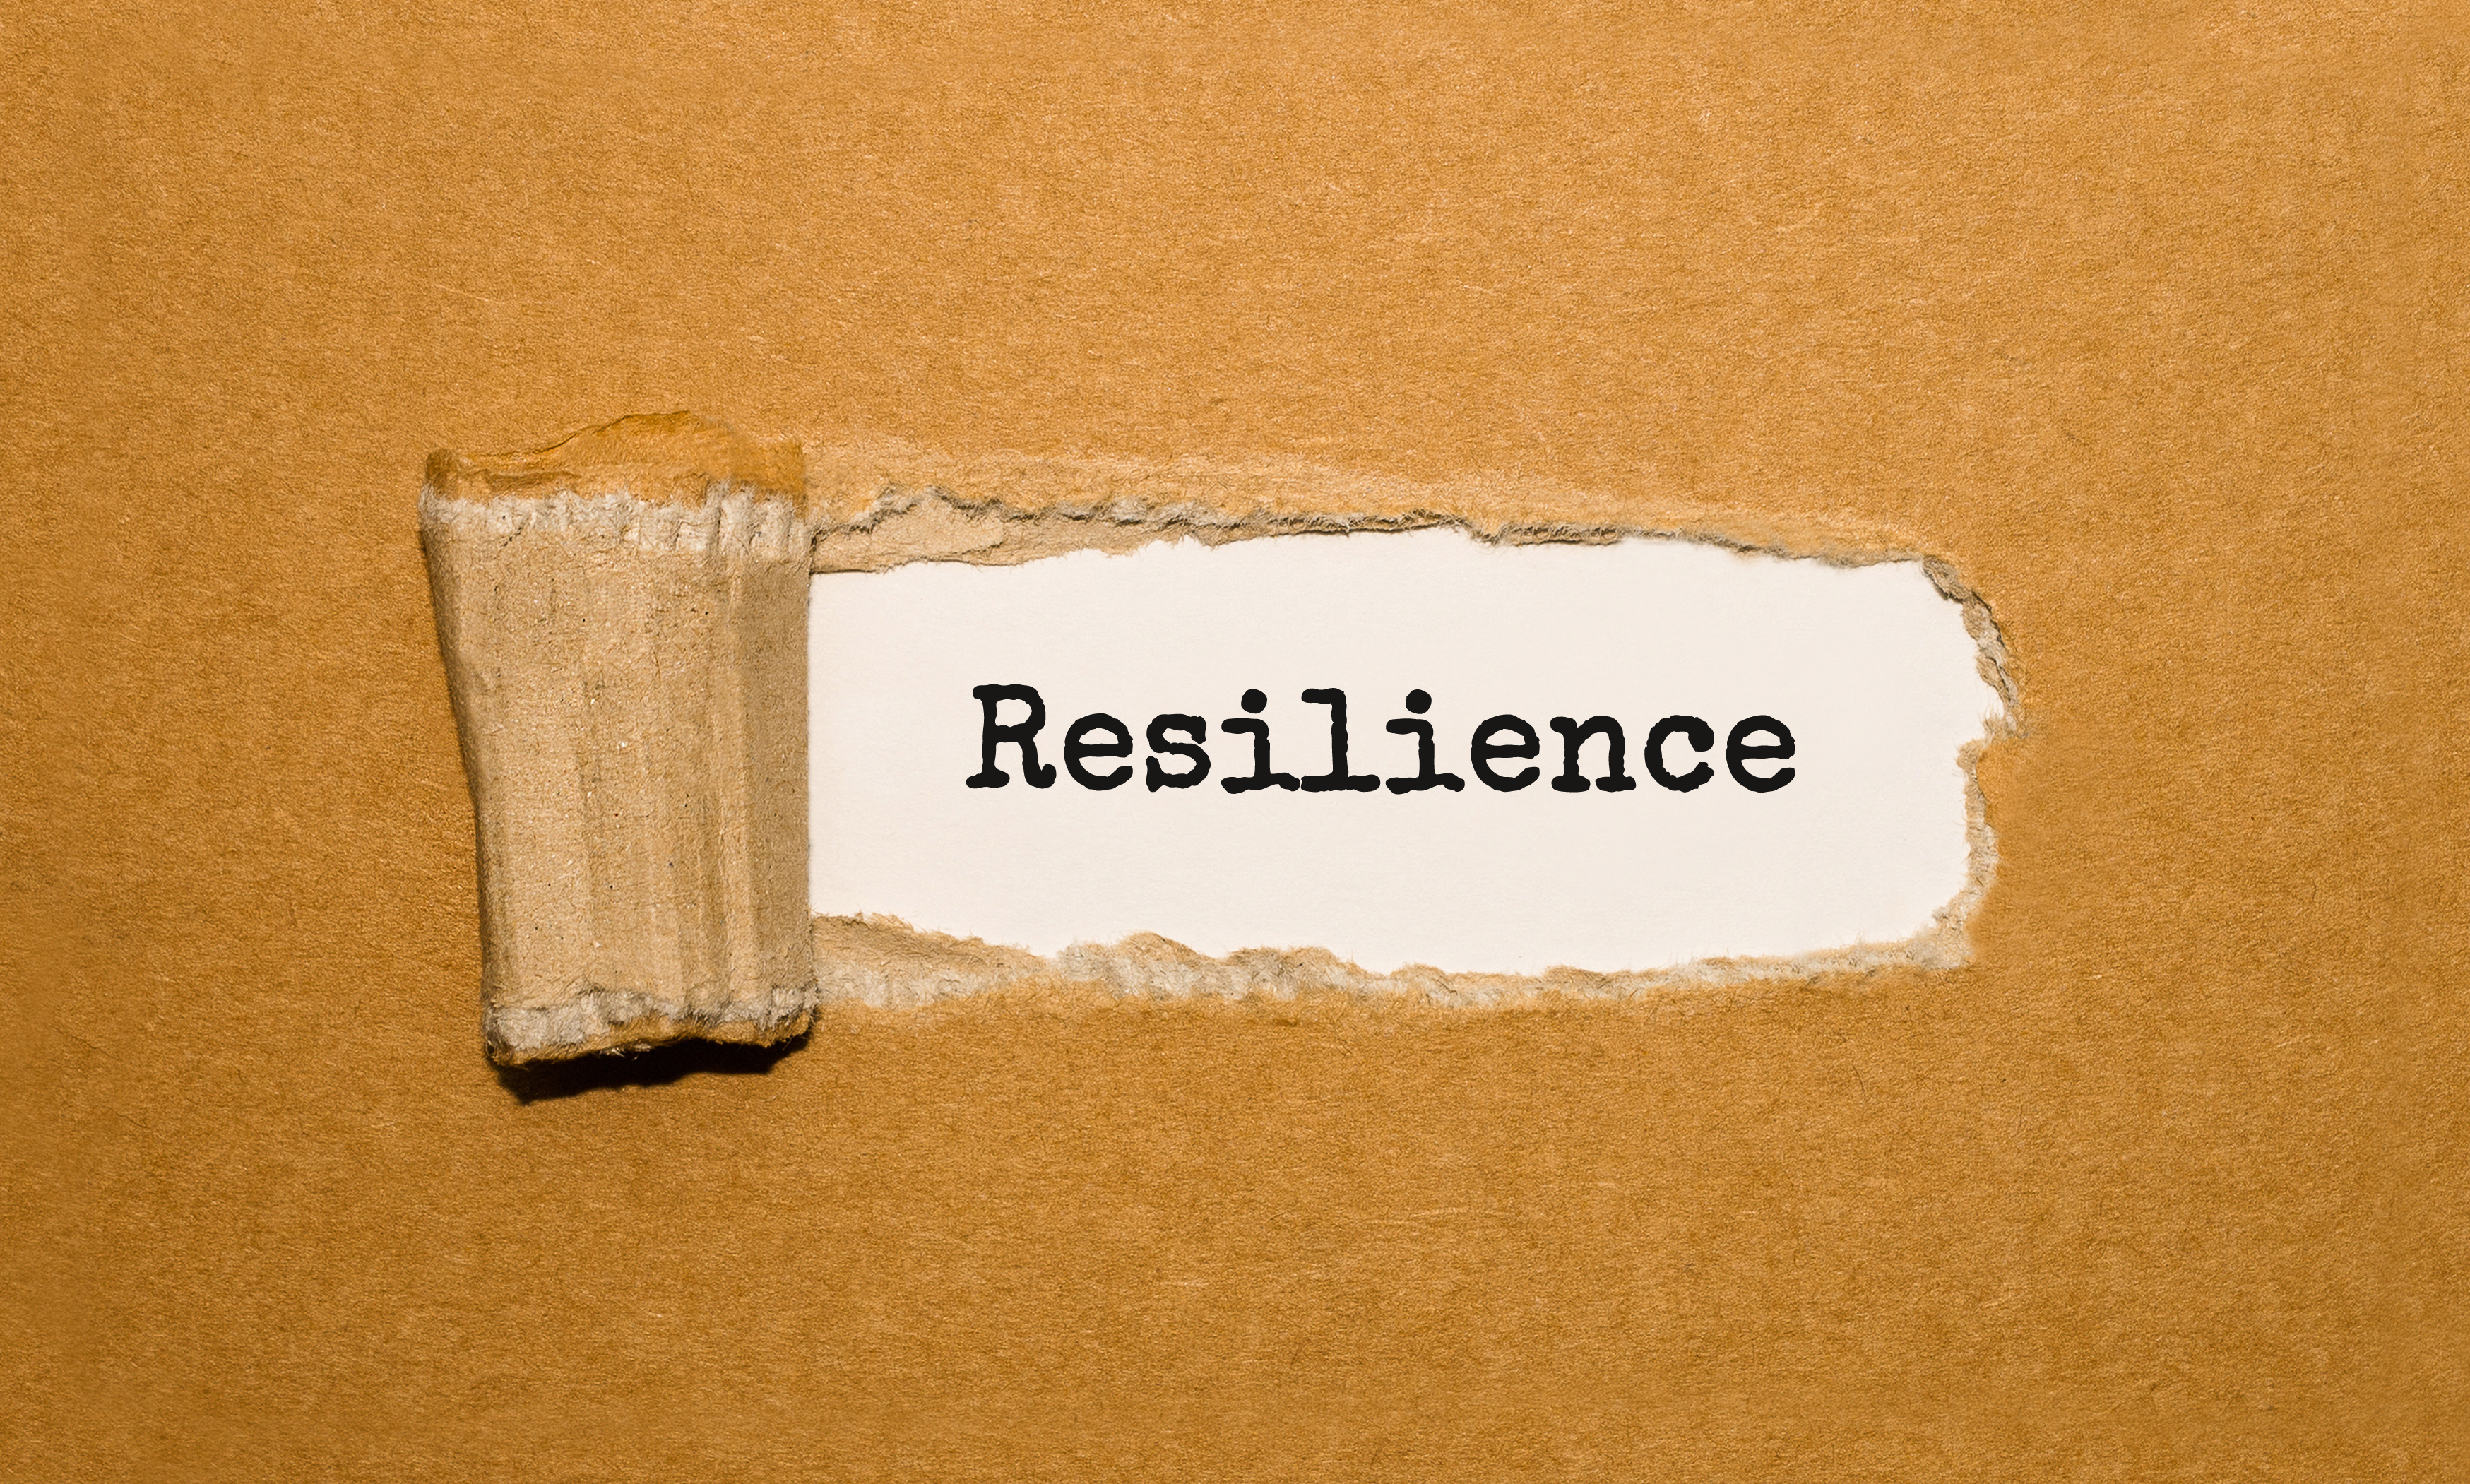 COVID-19: Resilience & Innovation Beats Bankruptcy